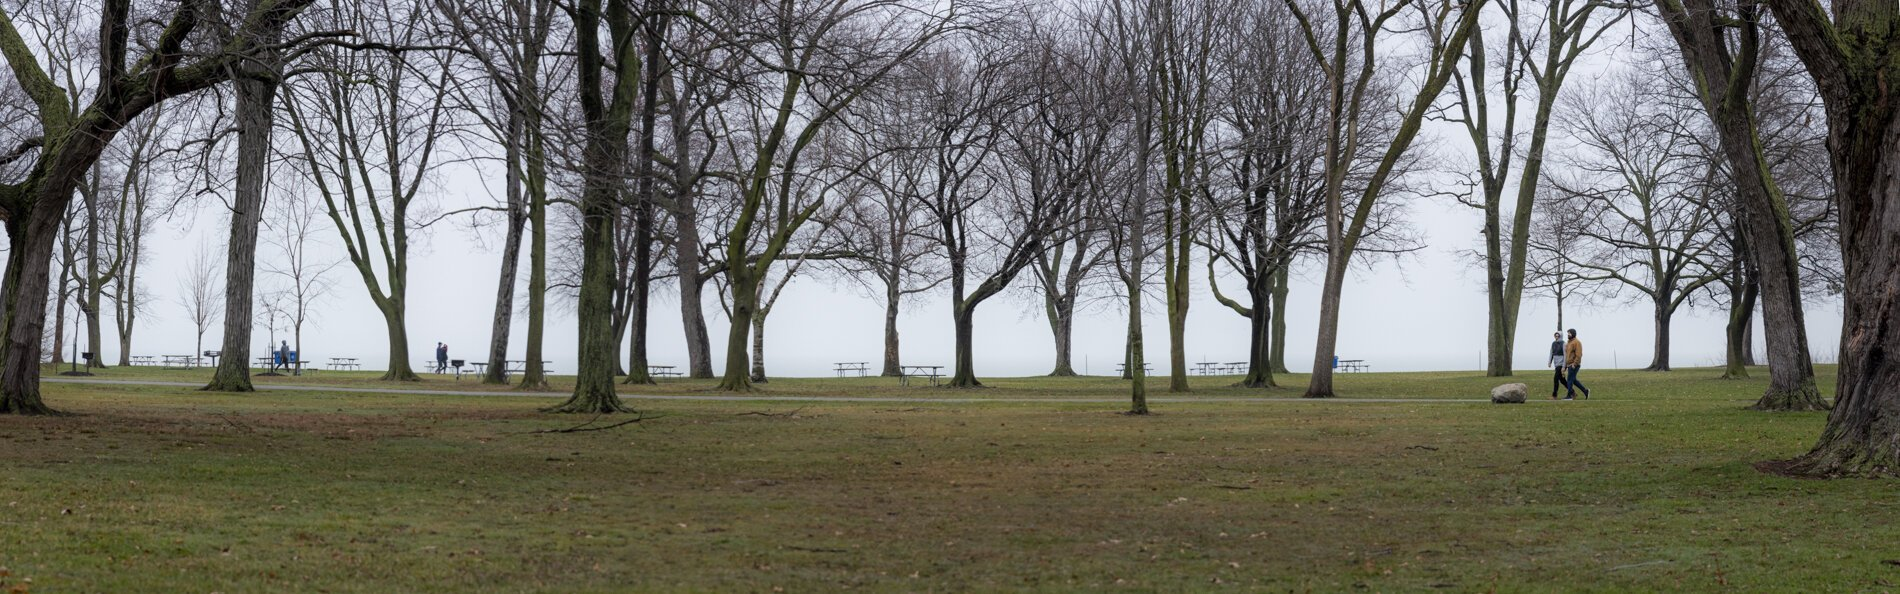 Social distancing at Edgewater Park